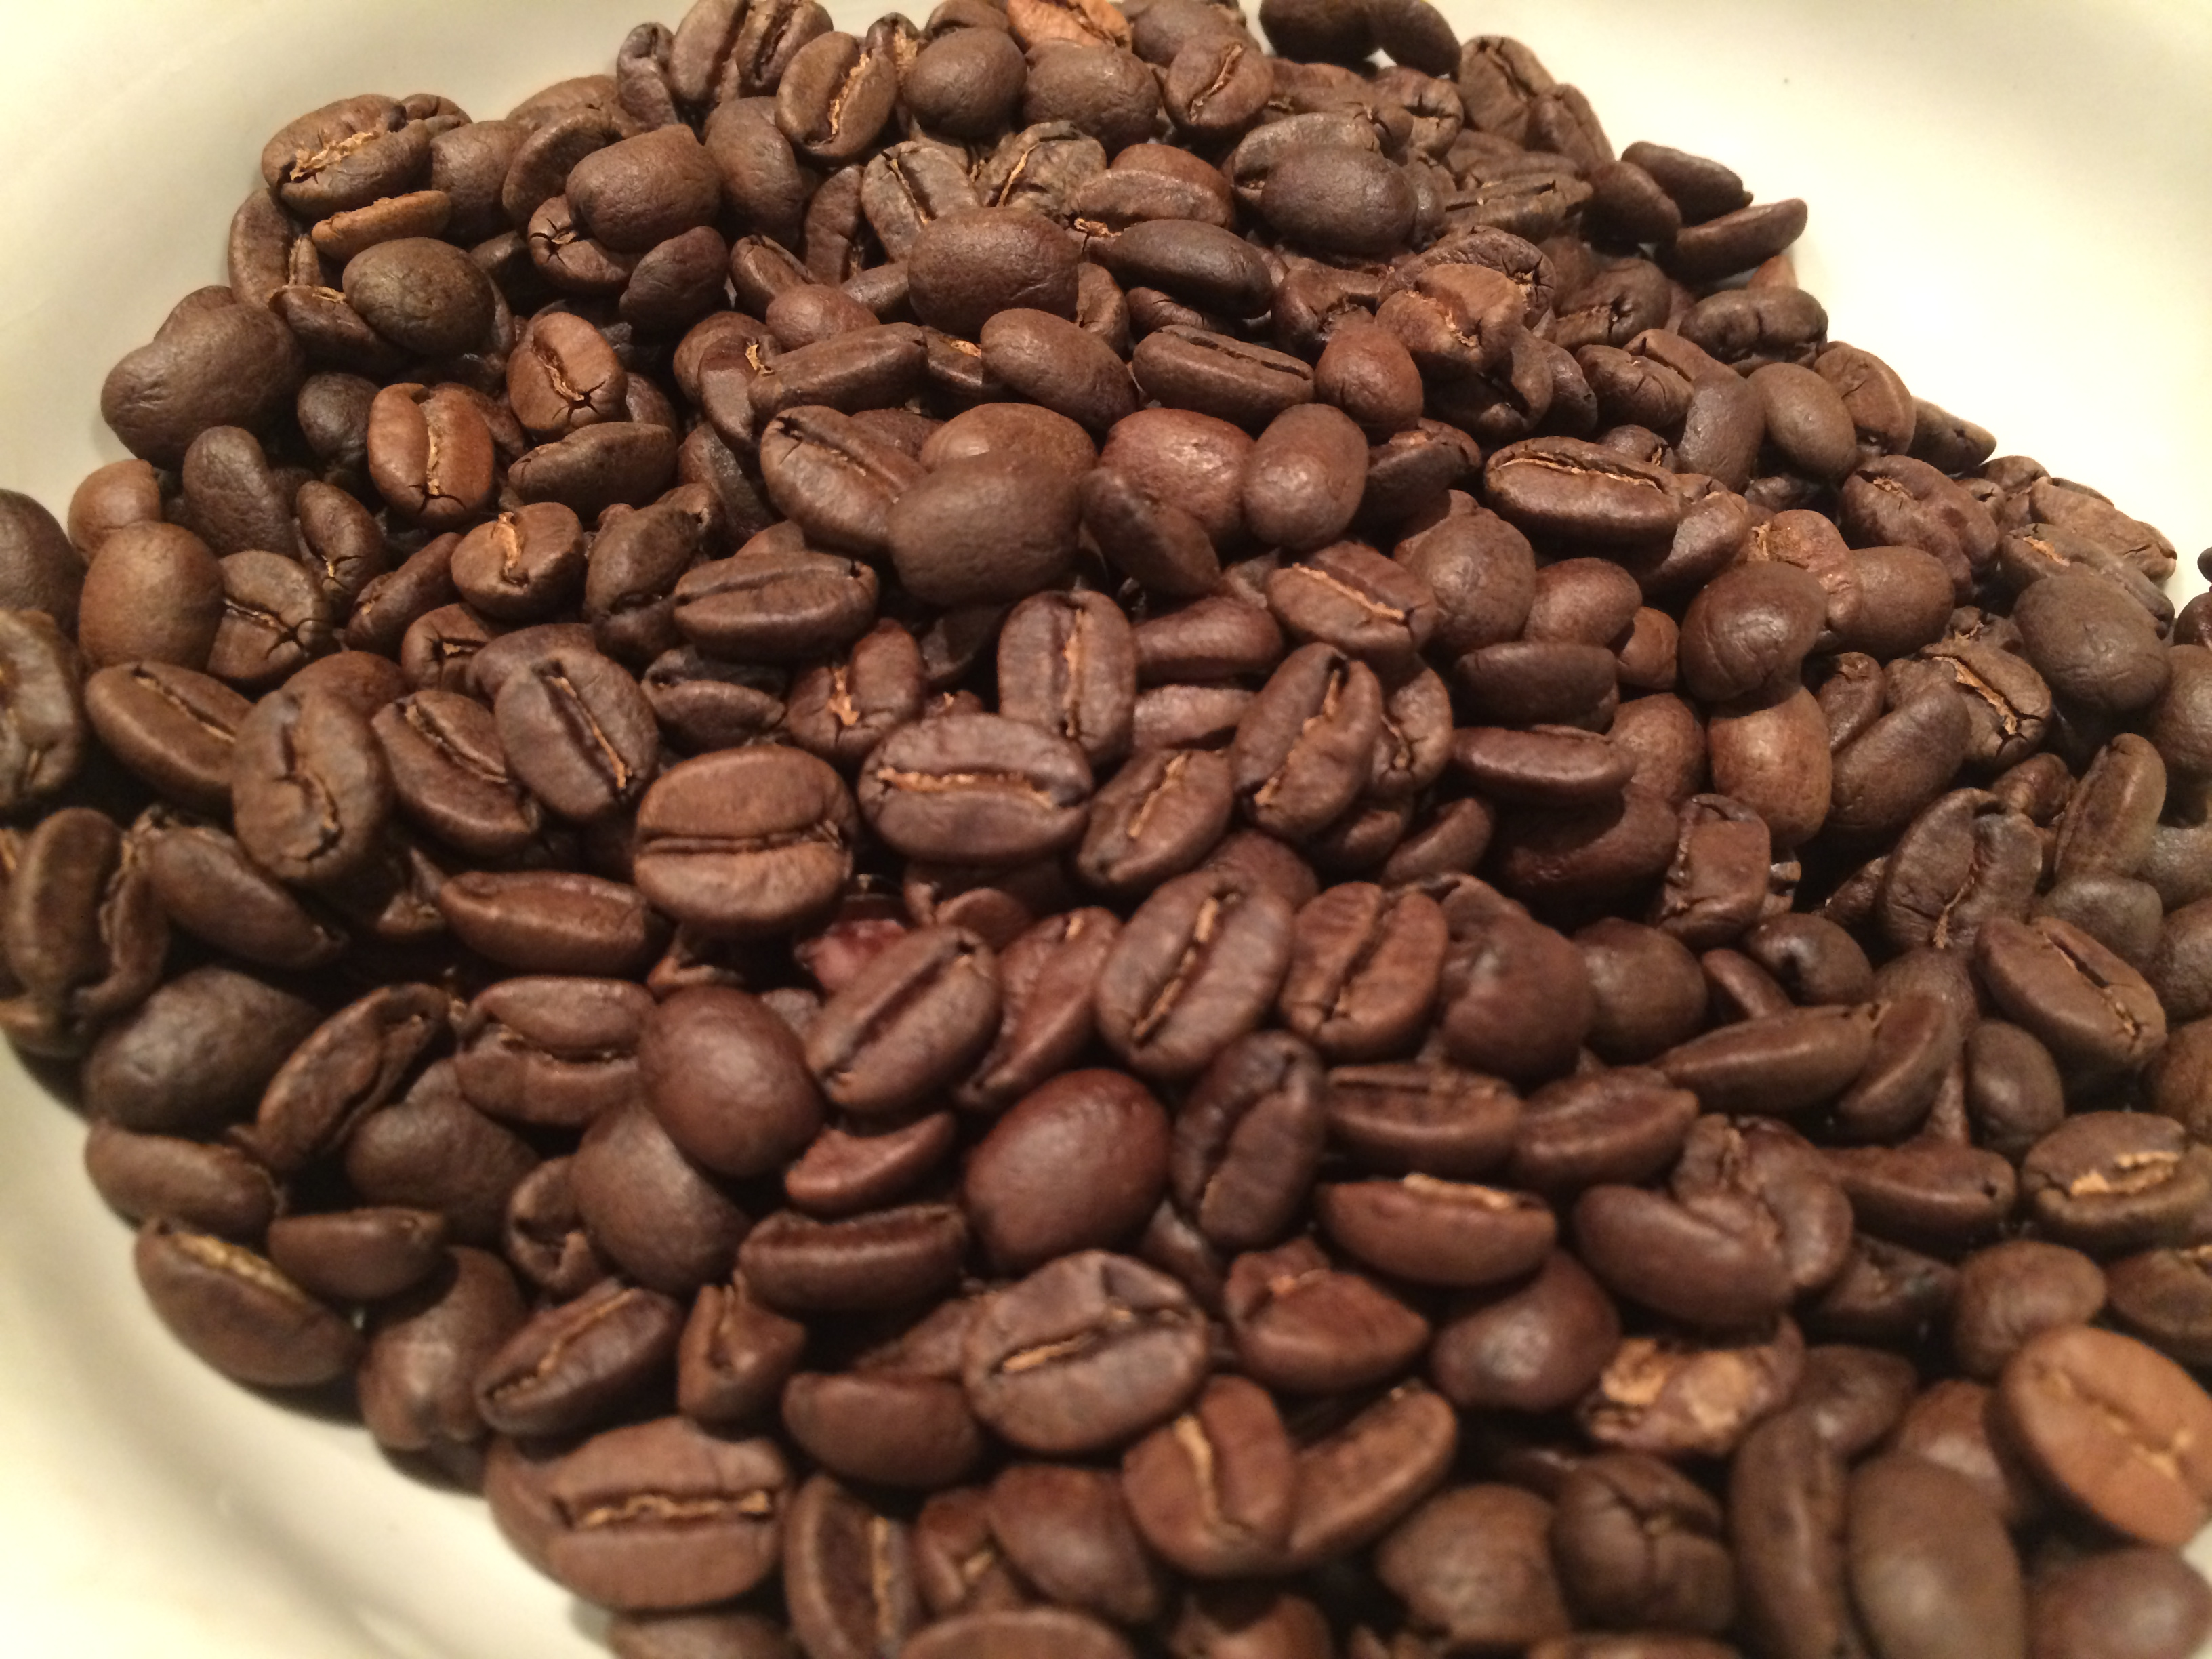 Fresh Roasted at Home Coffee from Green Coffee Beans